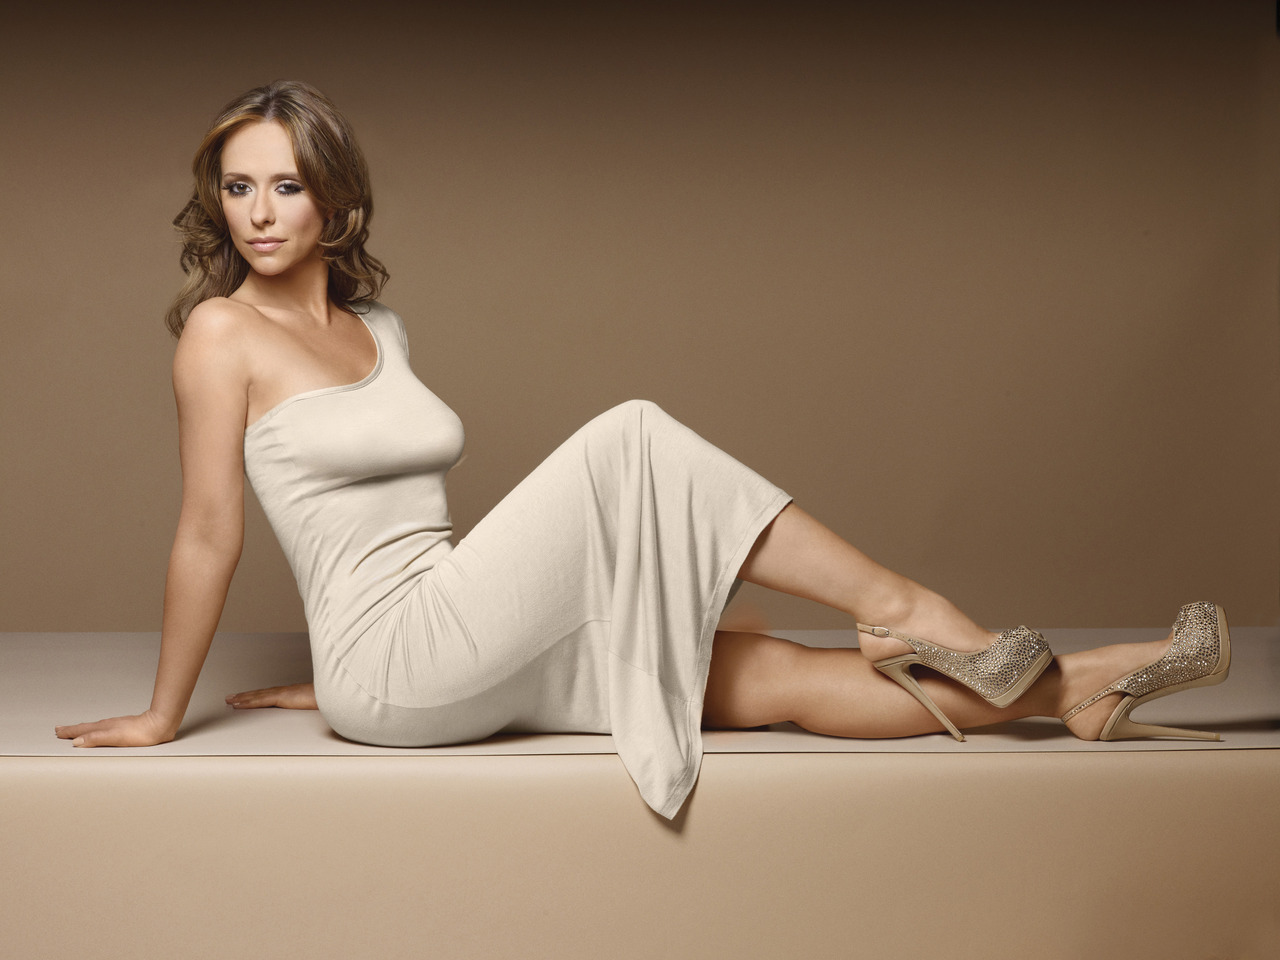 New Love Hot Wallpaper : Jennifer Love Hewitt Wallpaper Gallery - WallpaperSafari